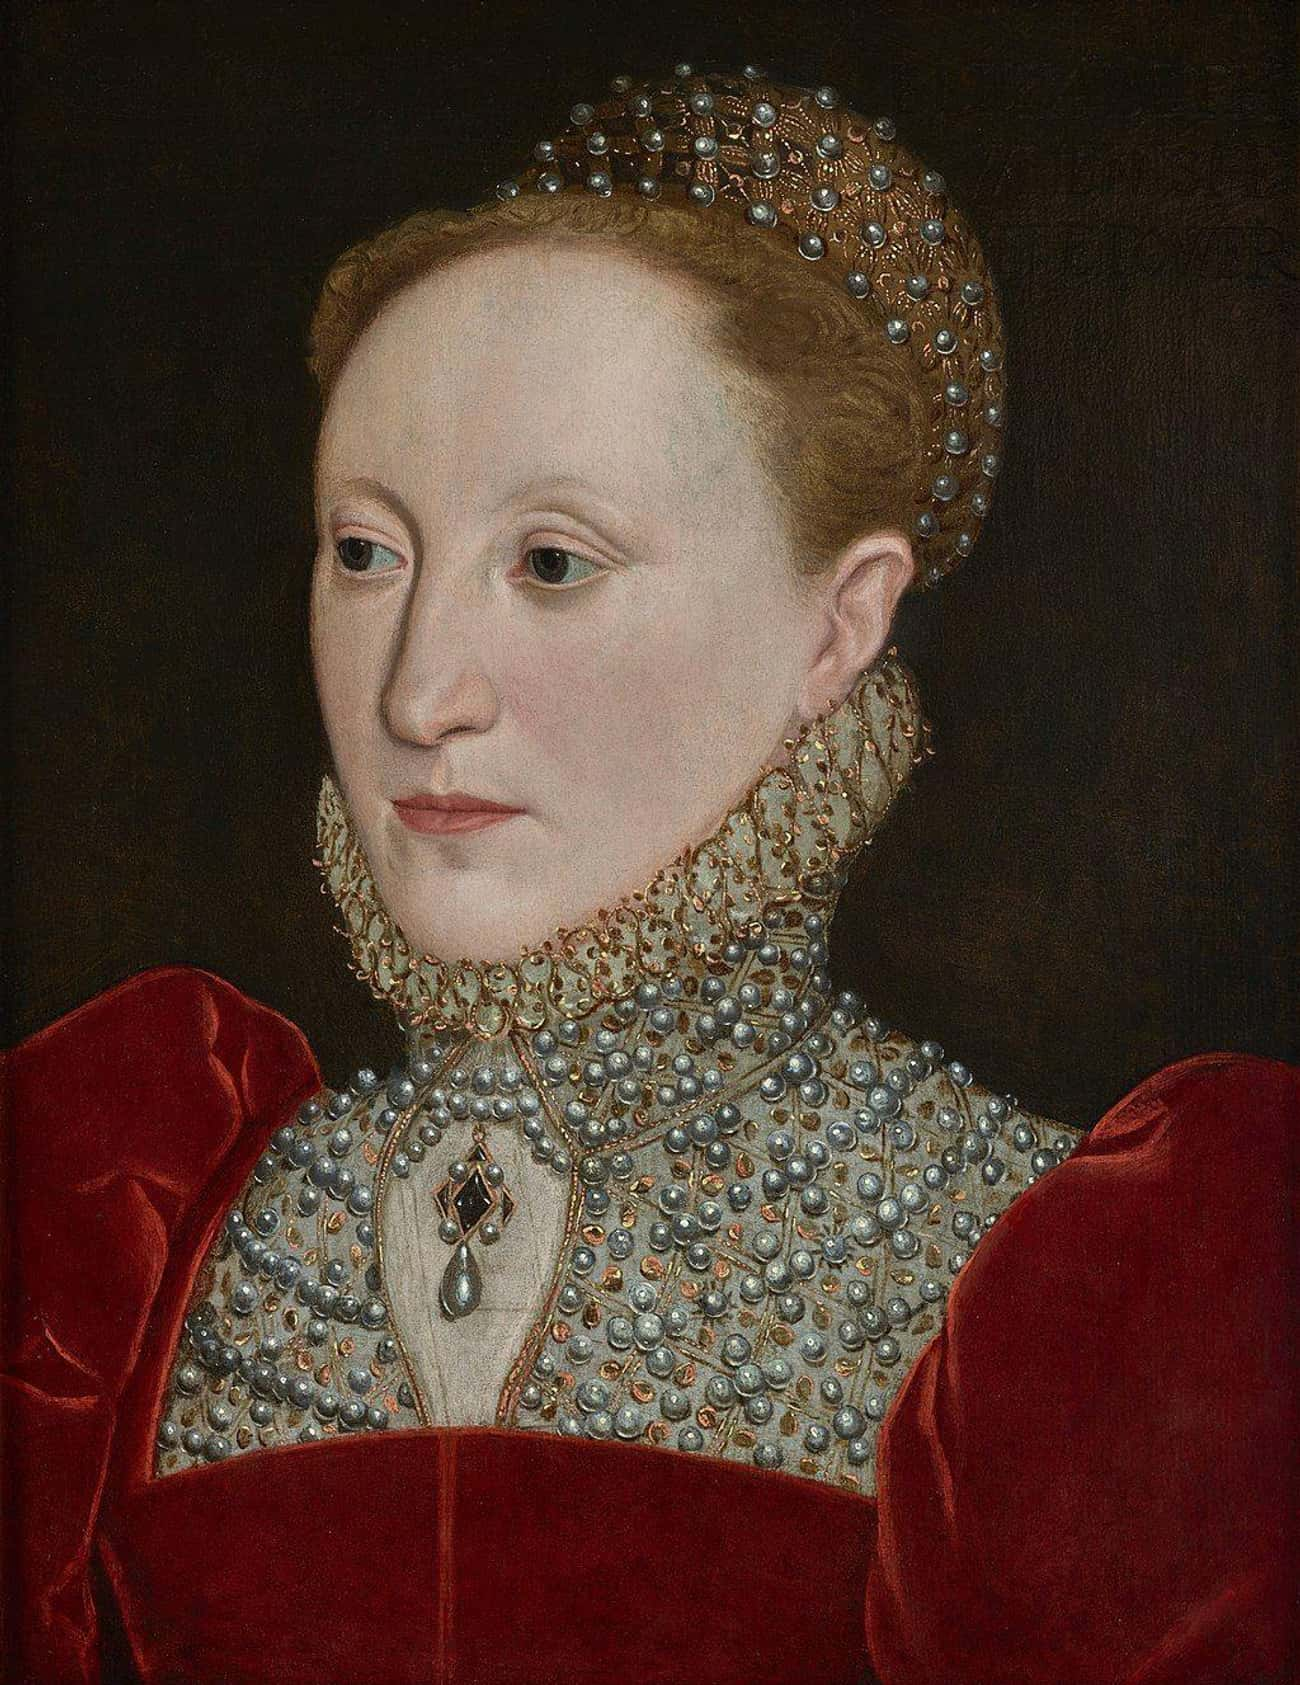 She Wore Lead Makeup For A Wee is listed (or ranked) 4 on the list Queen Elizabeth I Was Probably Killed By The Makeup Required For Her Signature Look